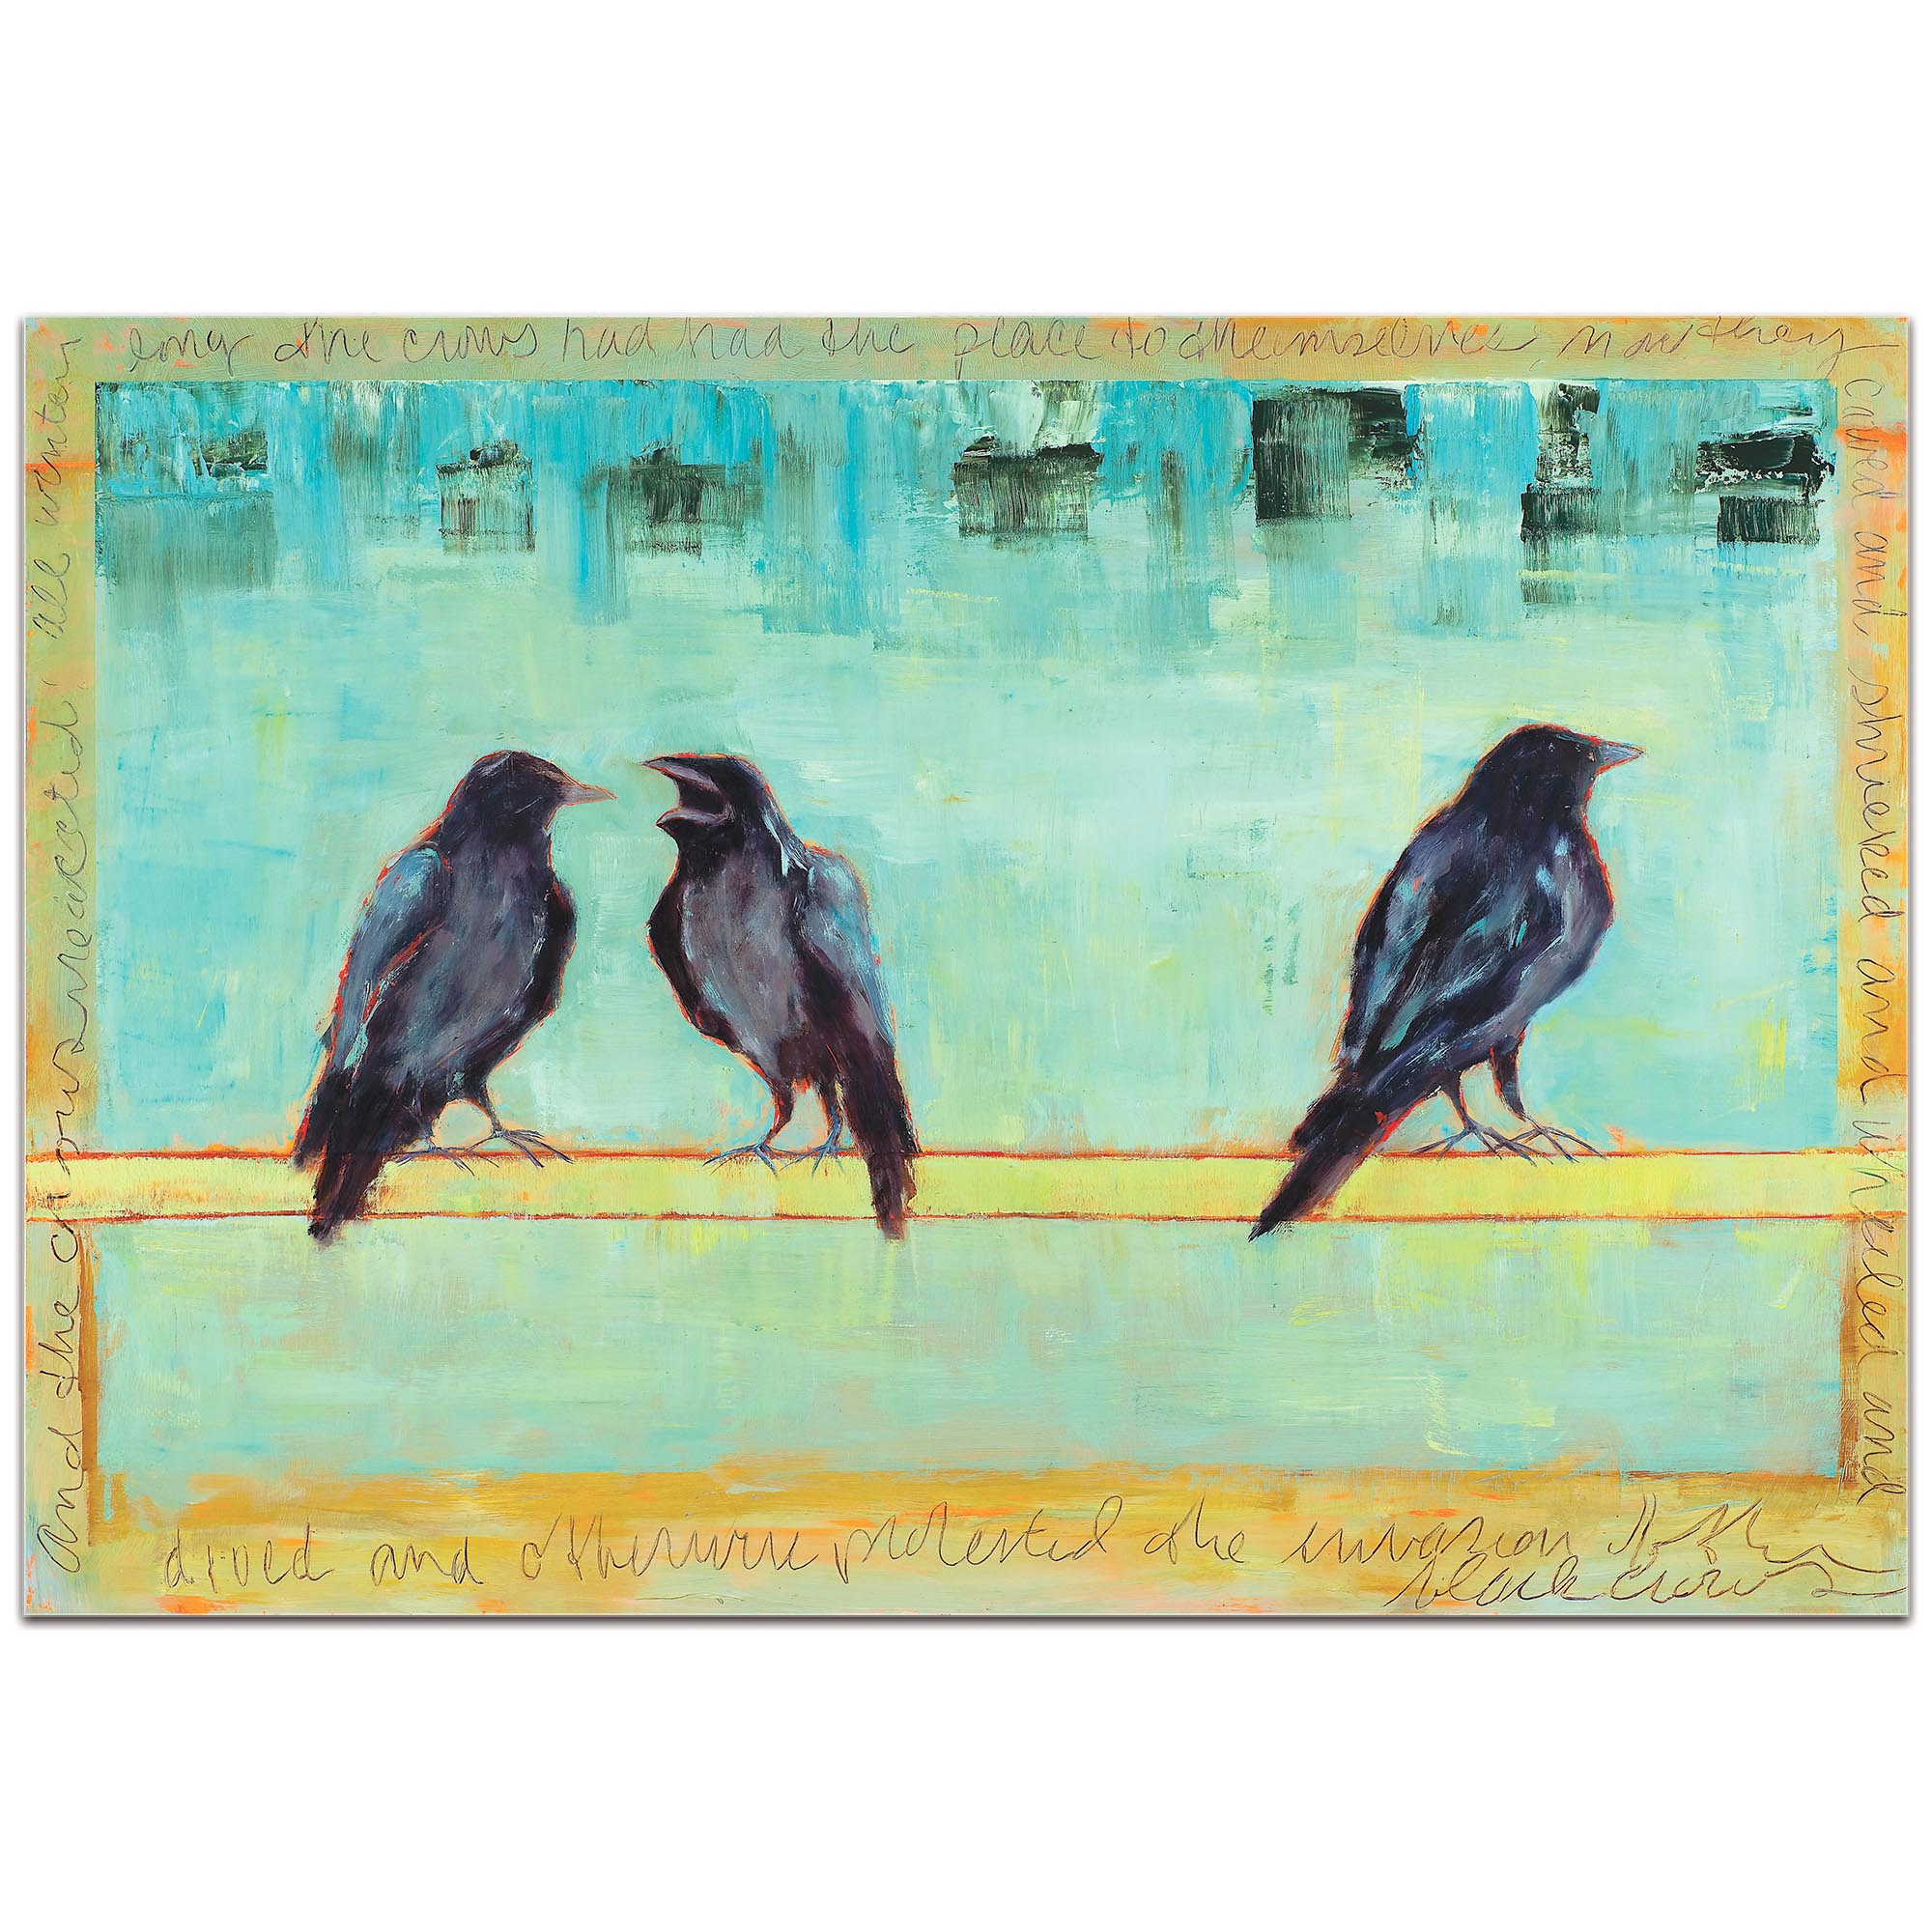 Contemporary Wall Art 'Crow Bar 2' - Urban Birds Decor on Metal or Plexiglass - Image 2